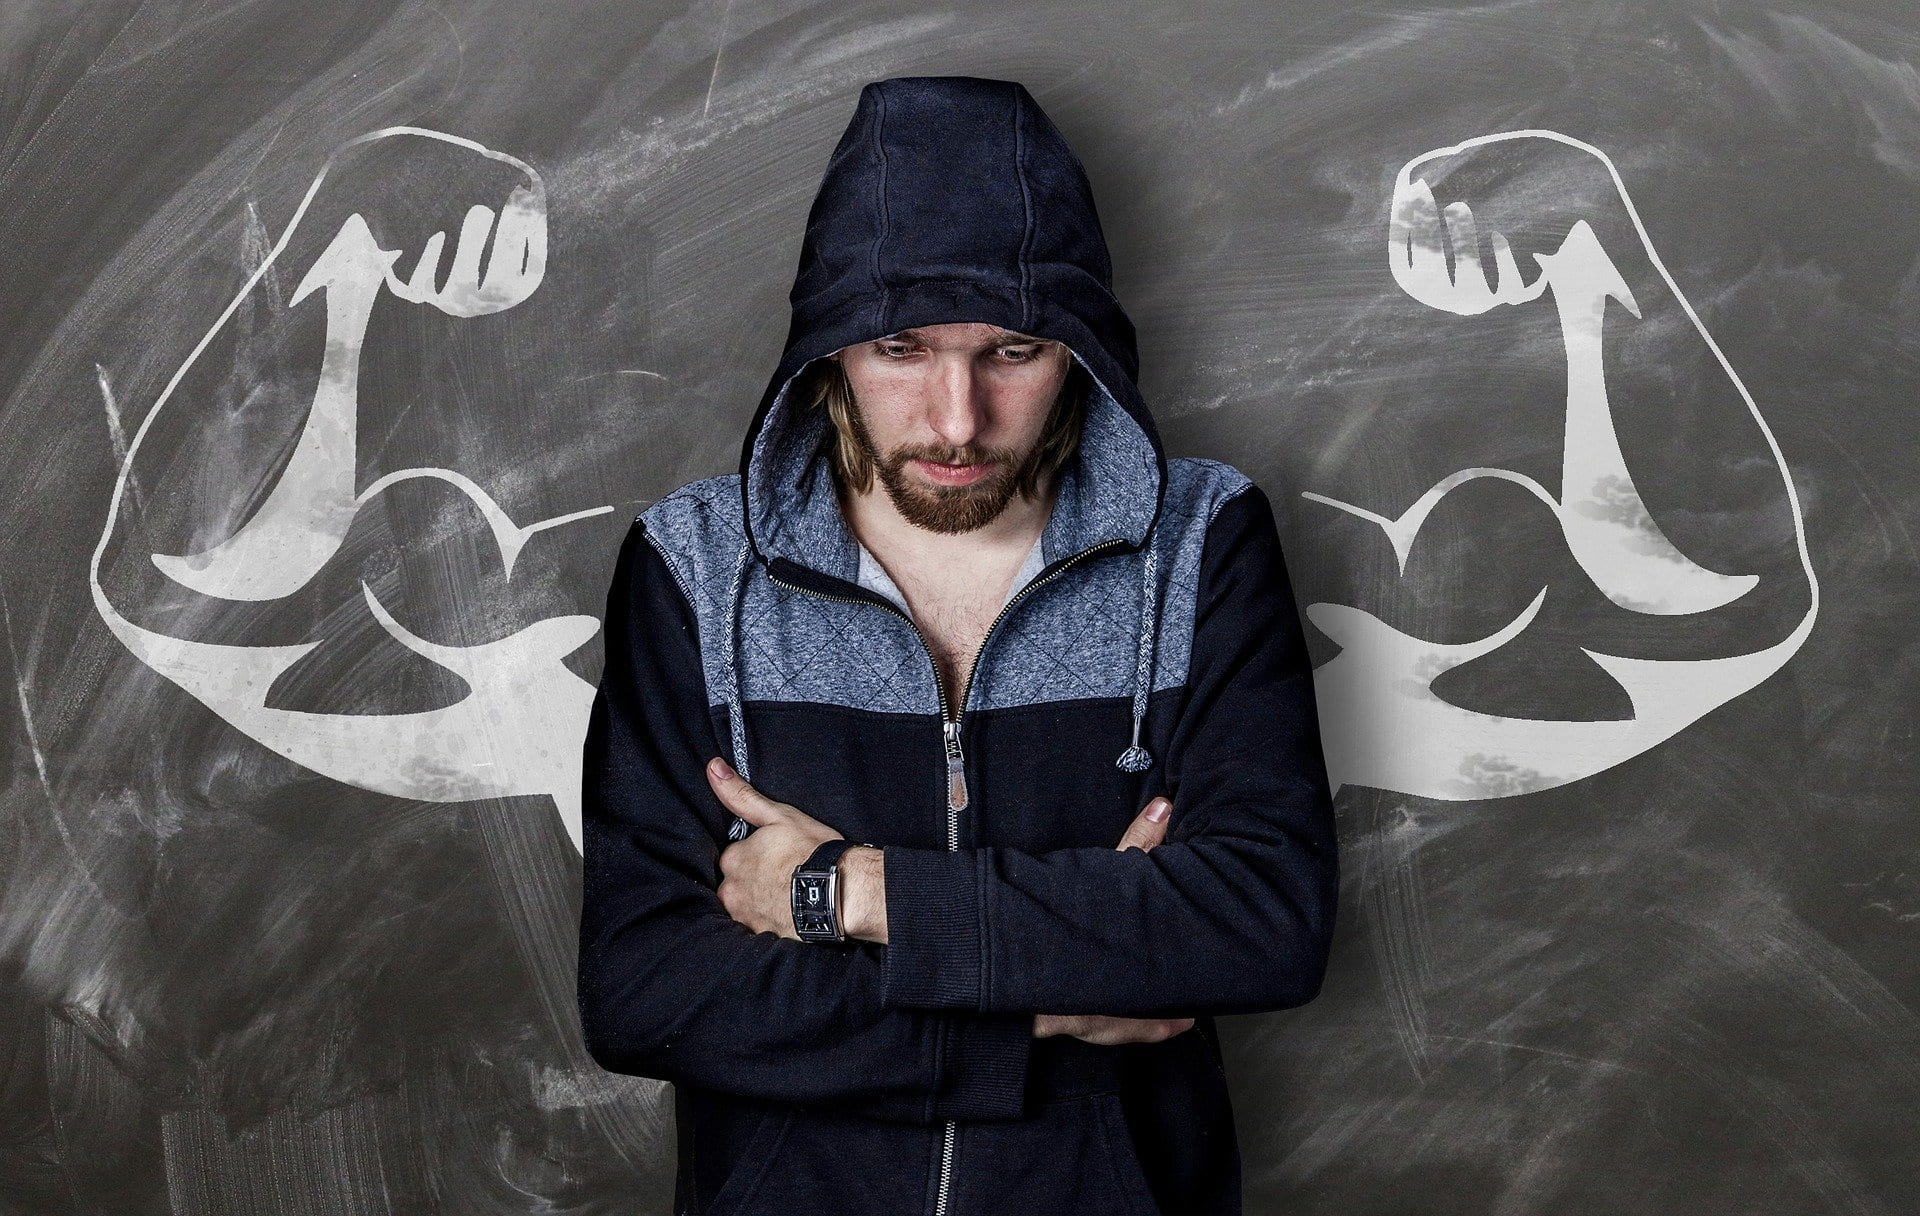 13 Shocking Facts About Testosterone